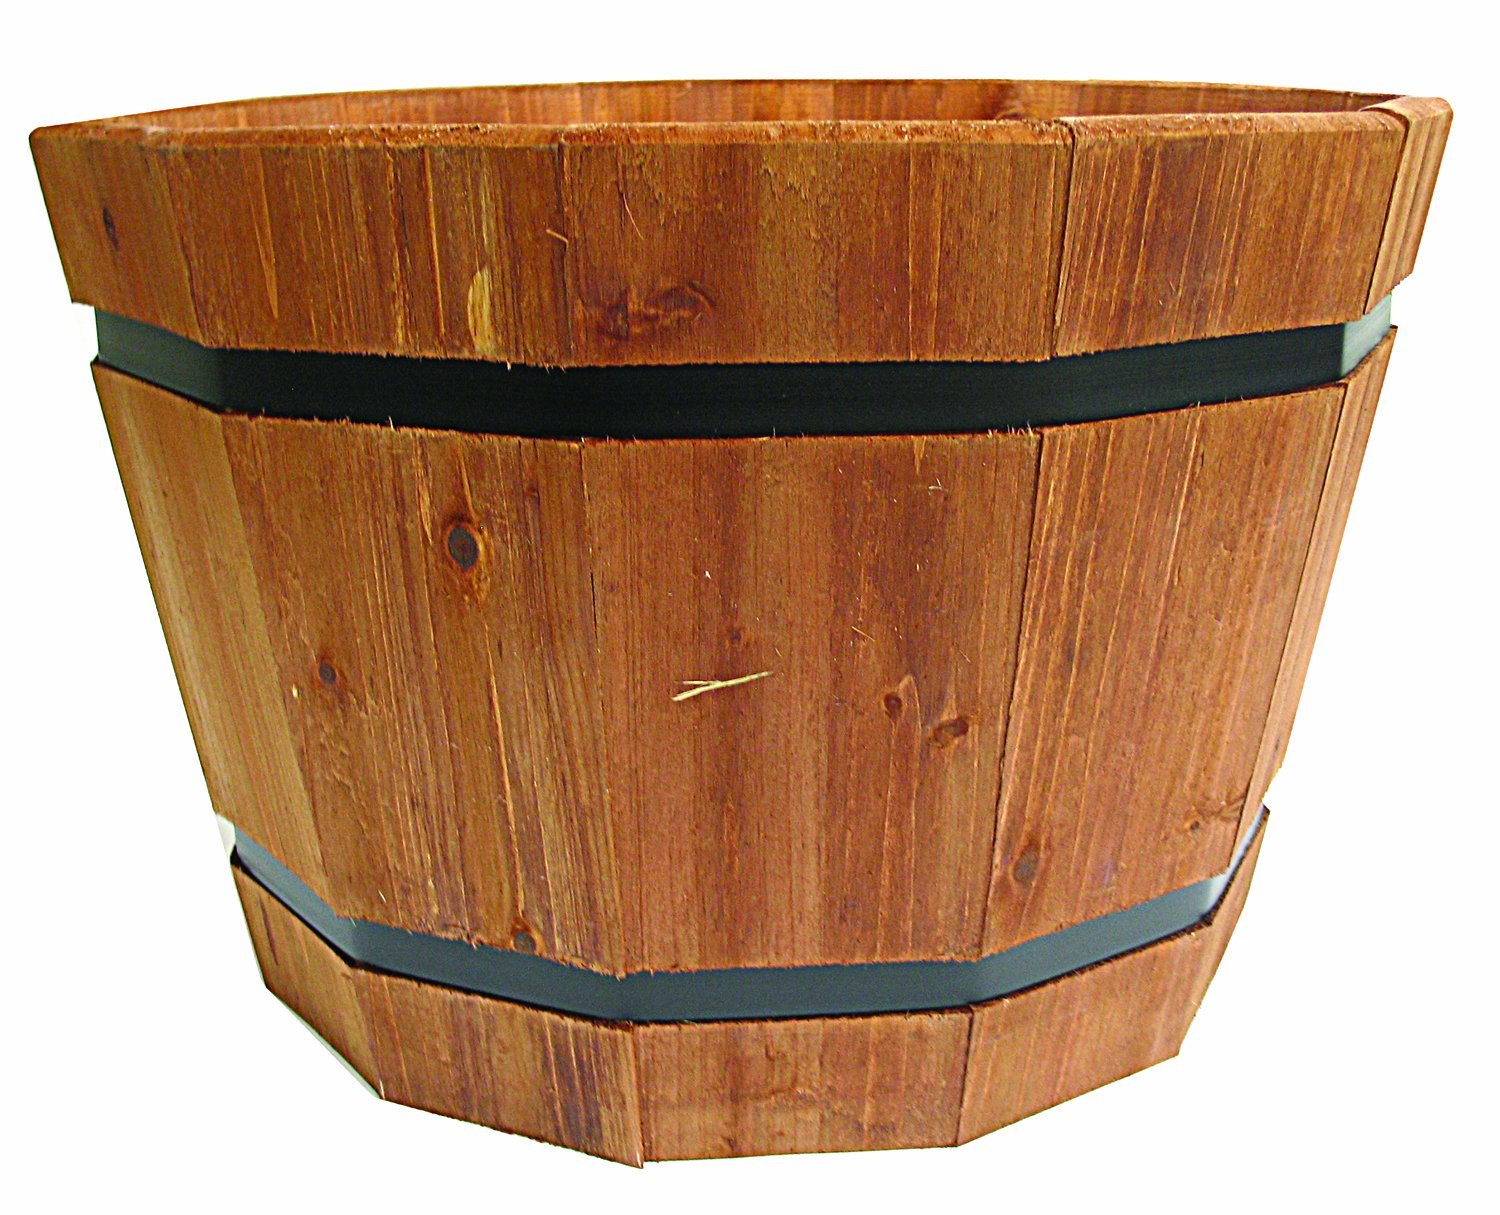 Amazon Com Pennington 100045251 Barrel Tub Heartwood 12 75inx20in